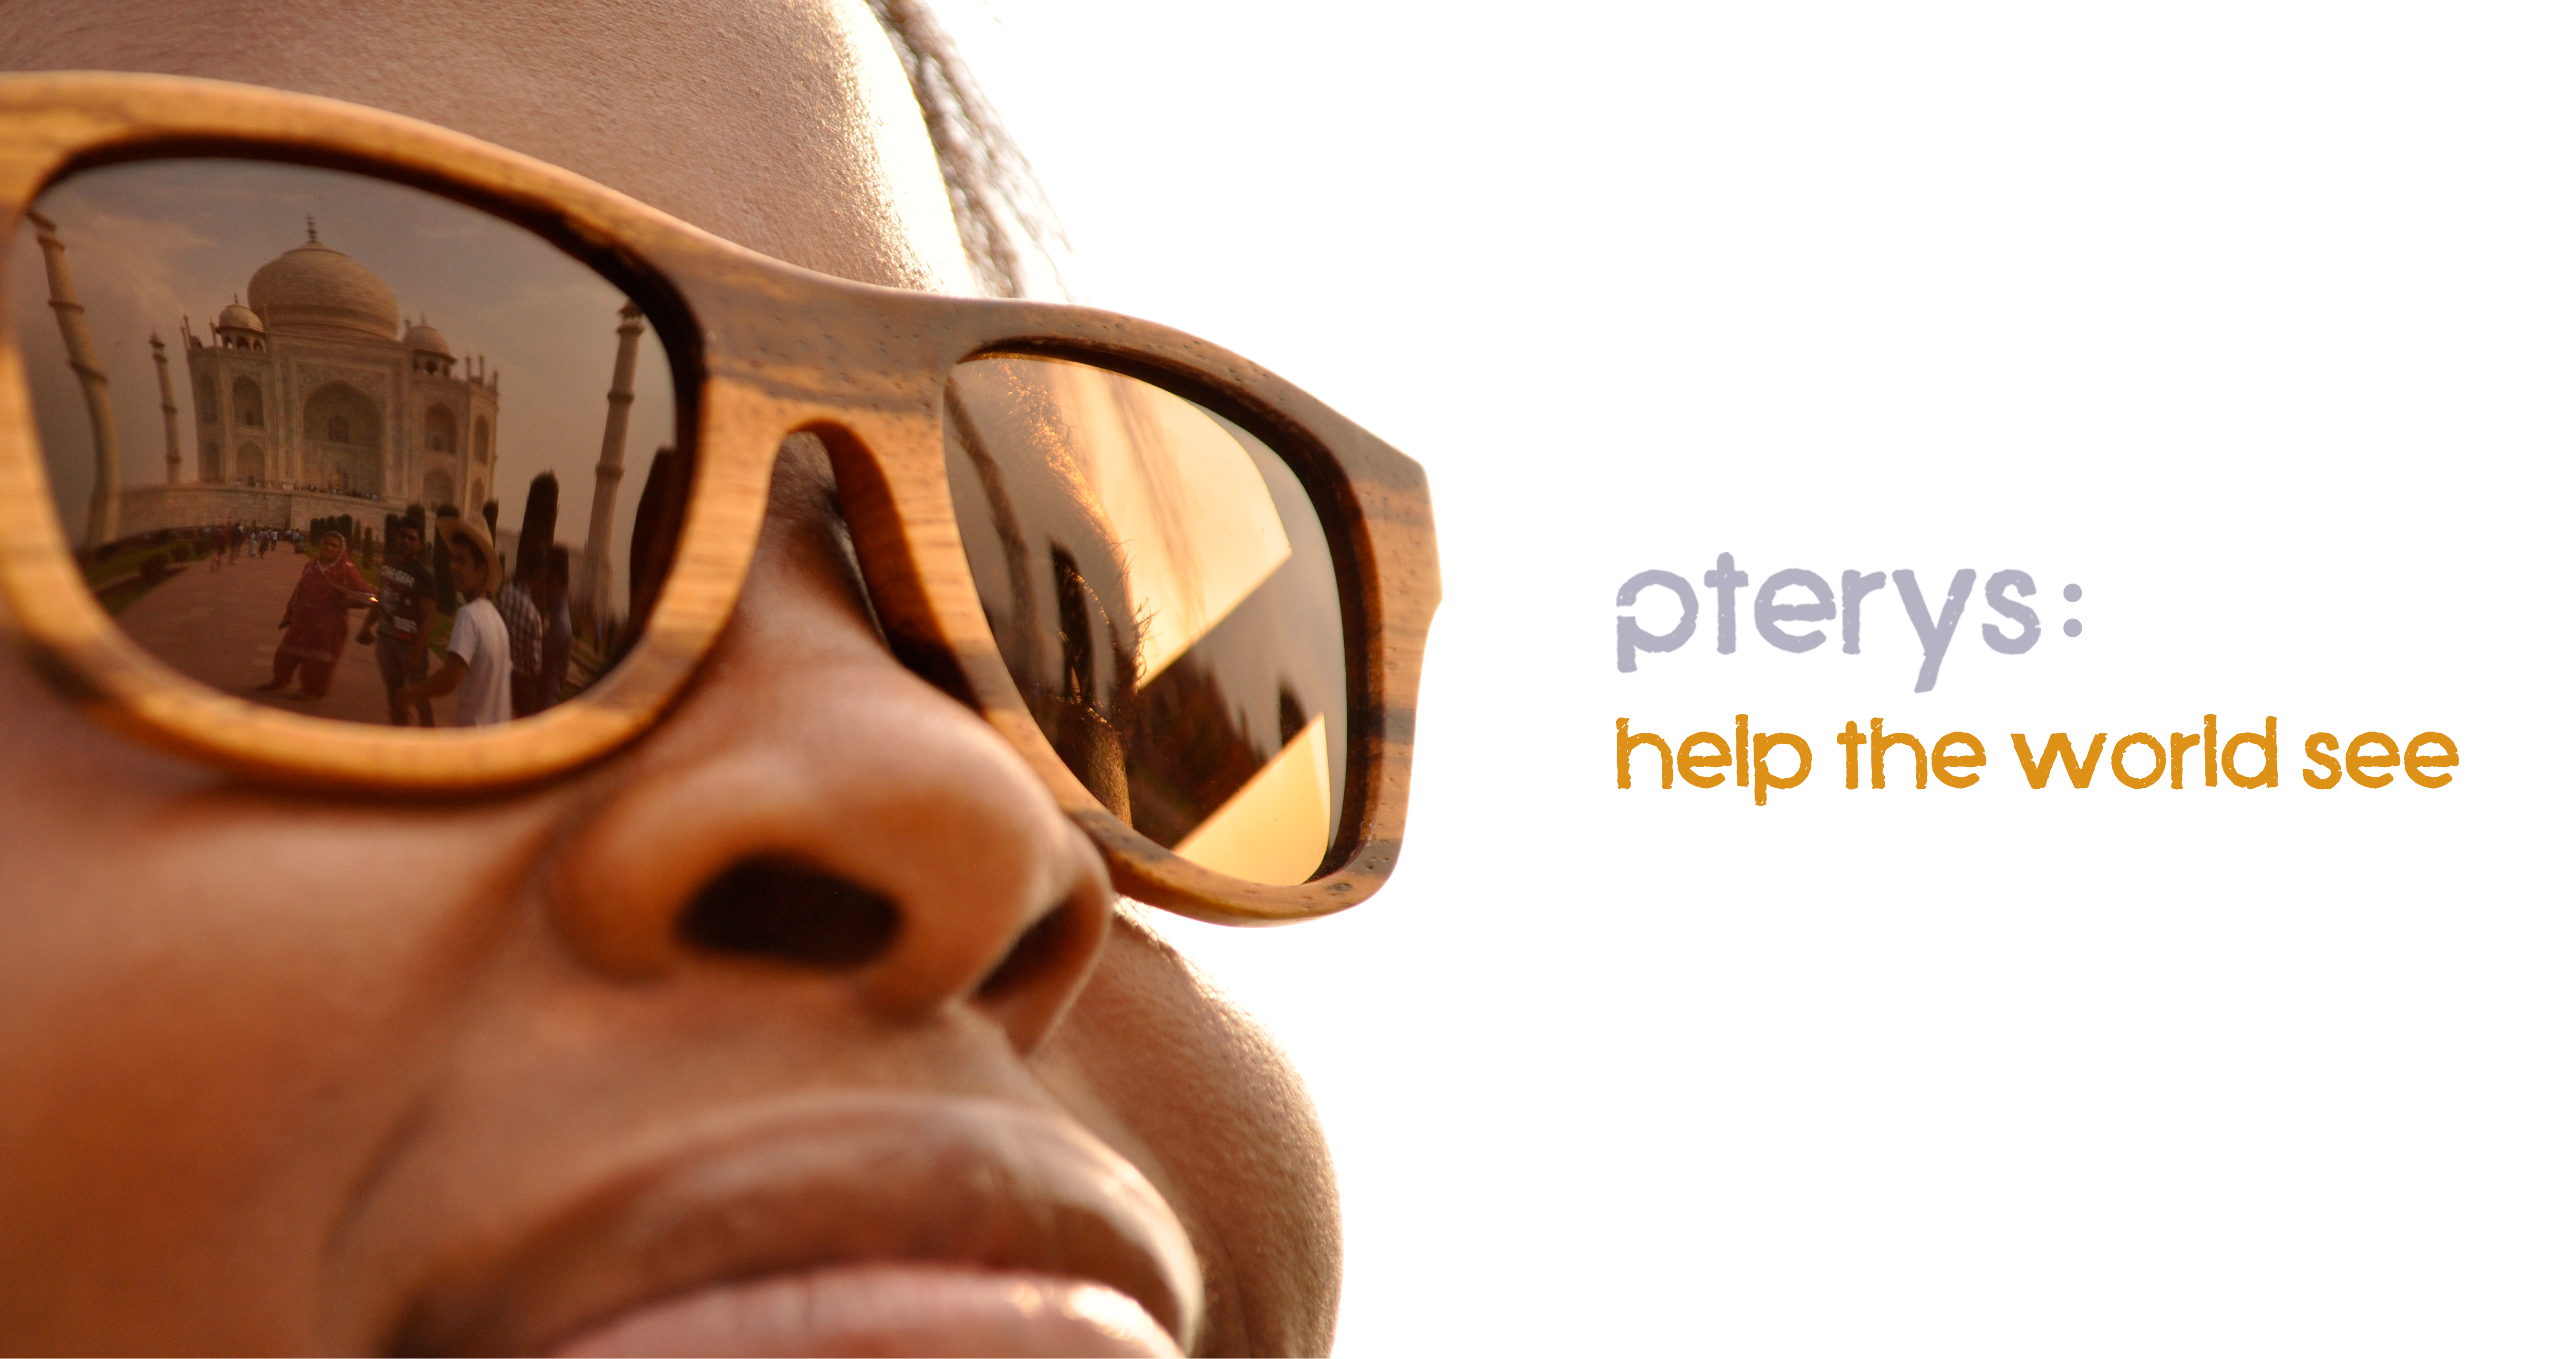 64d55db14f7 Join the Pterys community by purchasing and rocking a pair of these trendy  and stylish sunglasses!